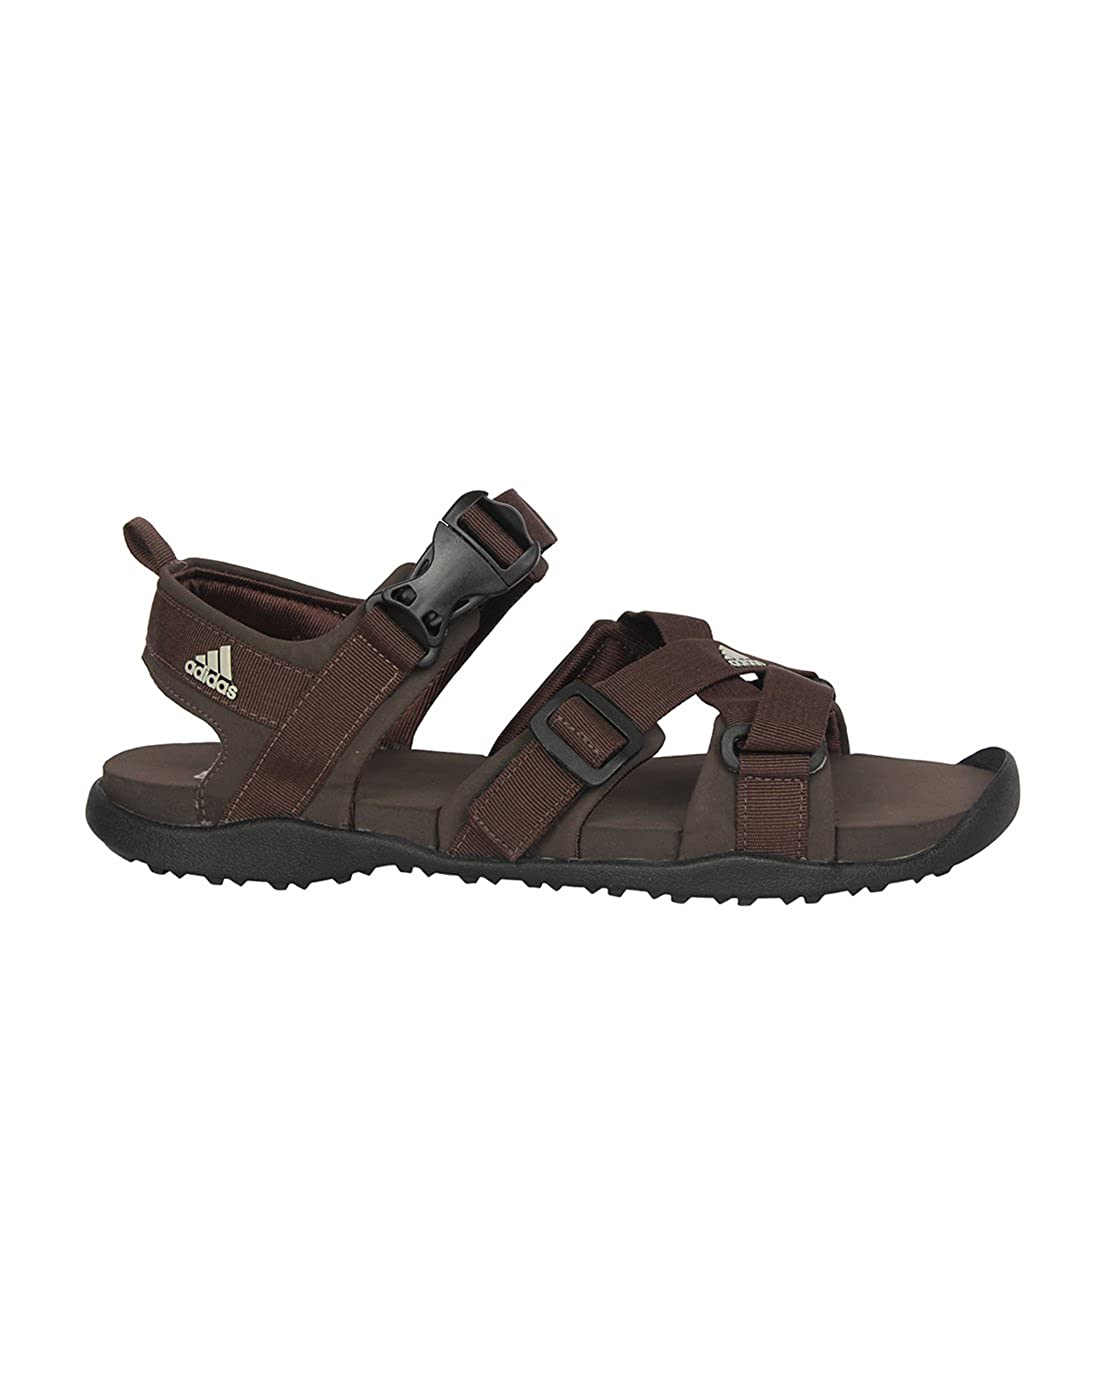 Gladi In Men Prices At Low Online Adidas Brown 9ukBuy Sandals roshdCQBxt